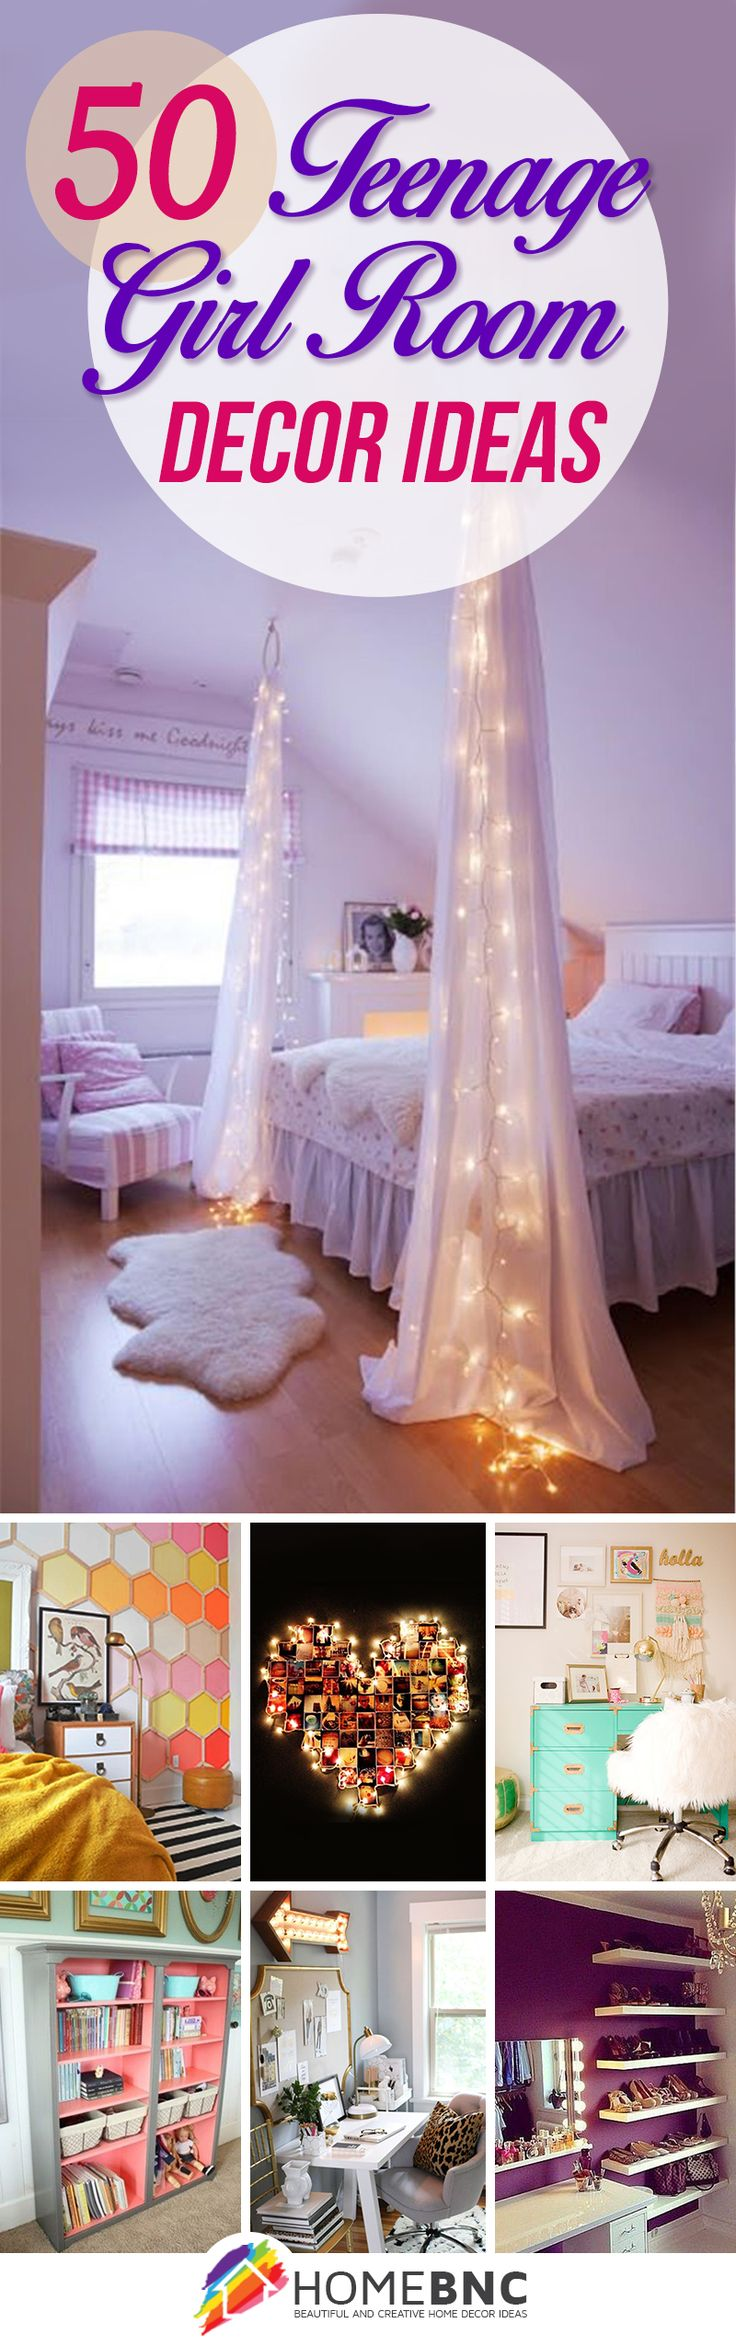 girls room decor 50 stunning ideas for a teen girlu0027s bedroom RYWMSLK